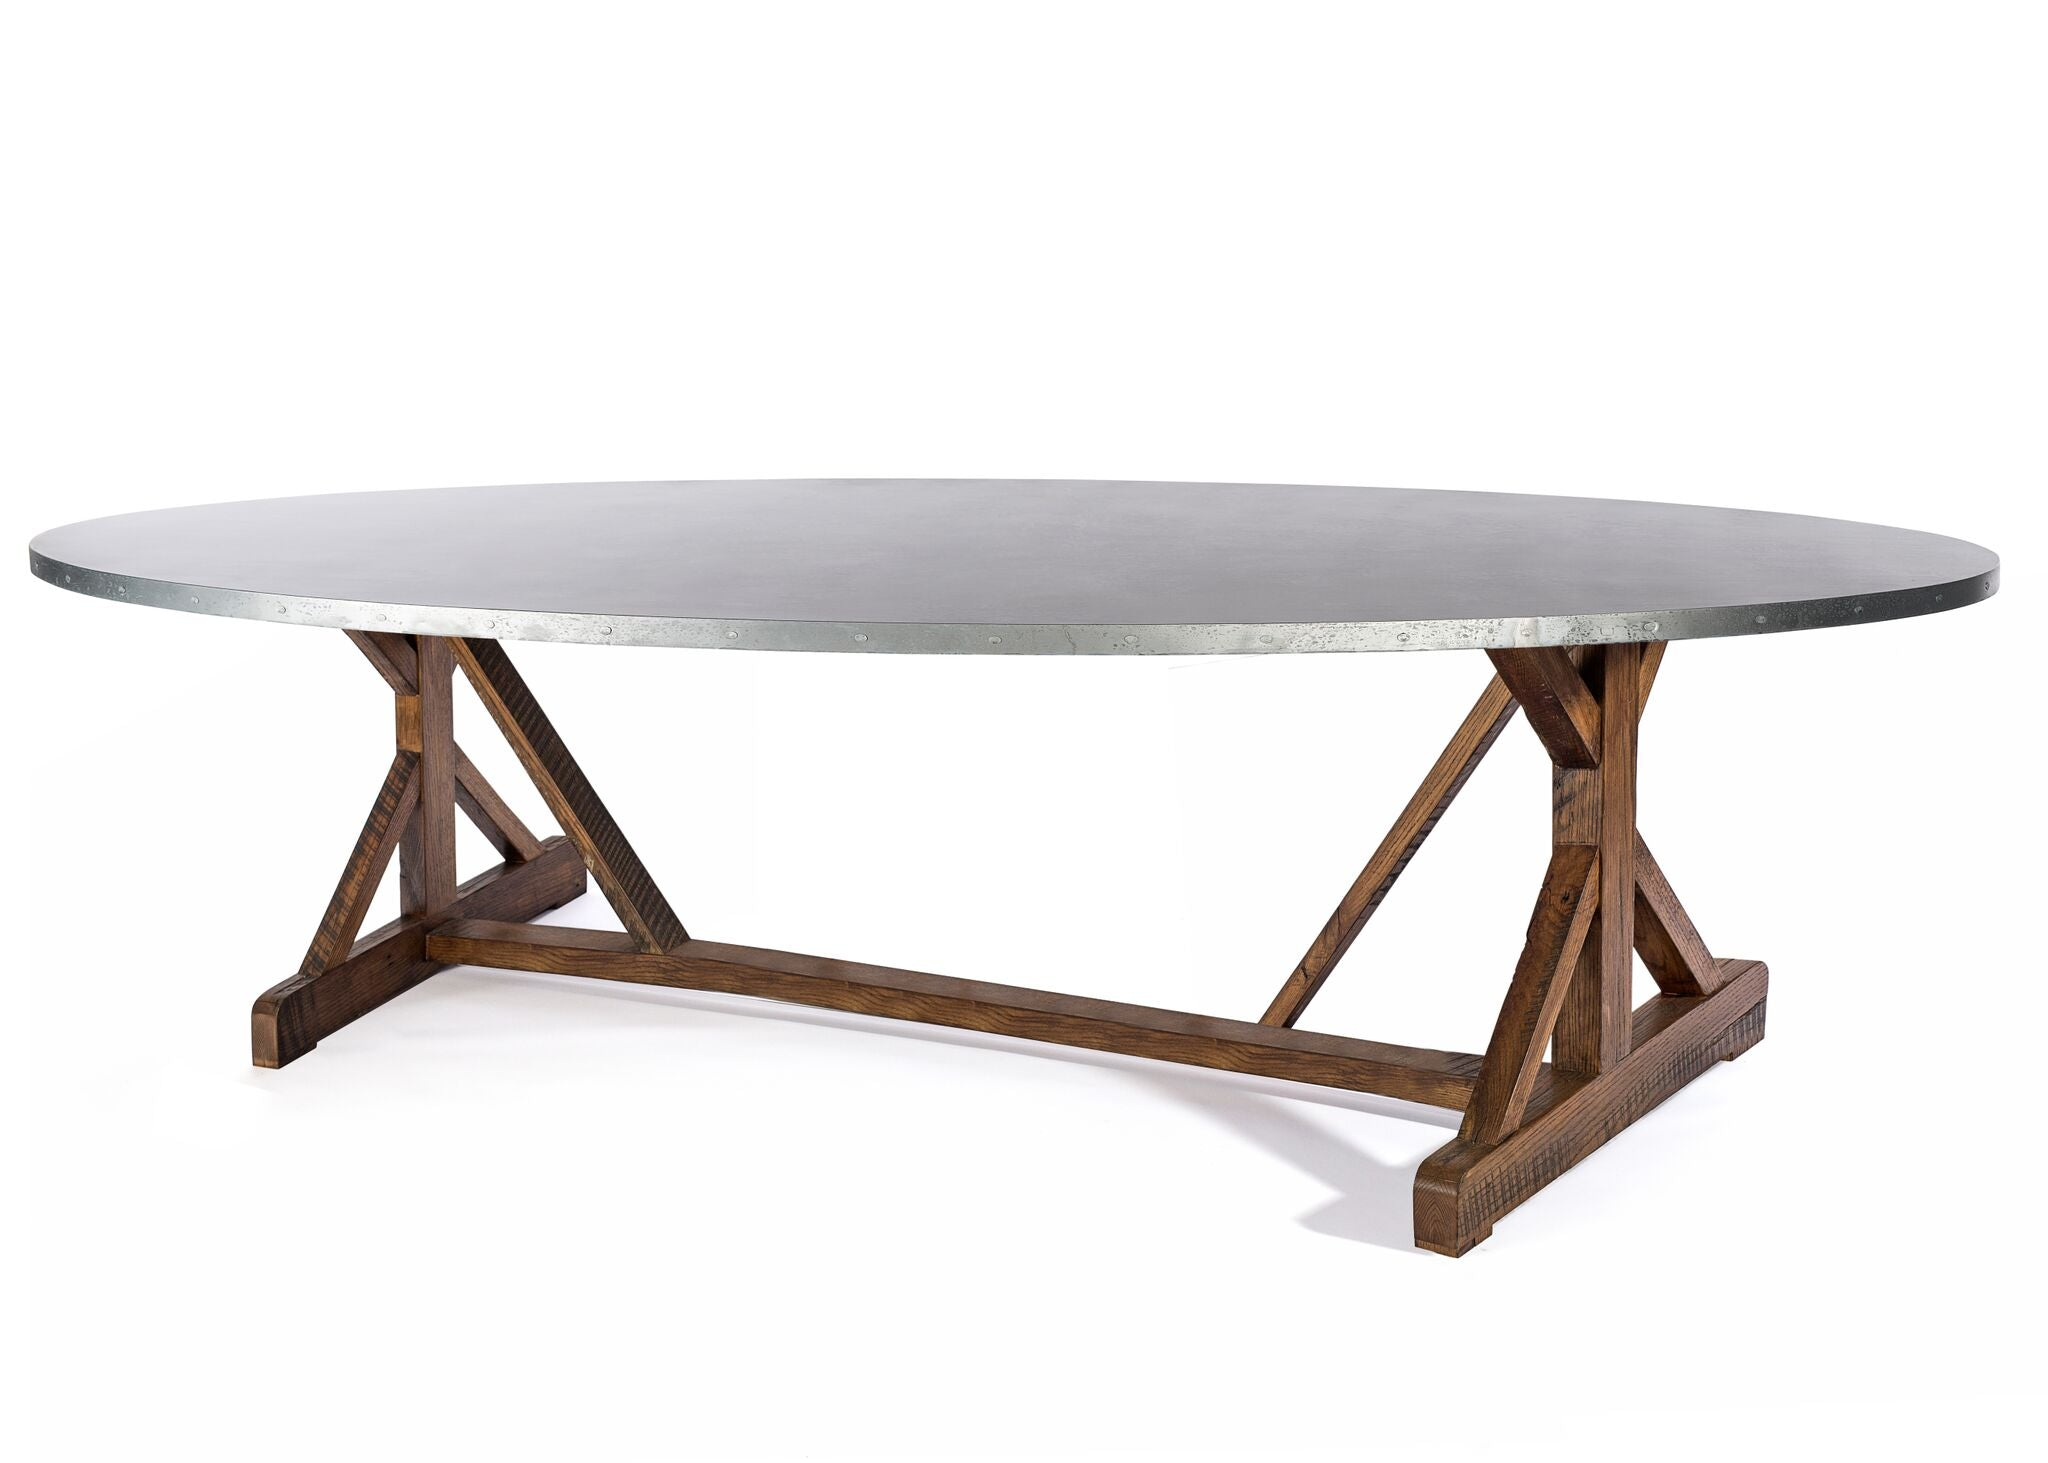 "Zinc Oval Tables | French Trestle Table | CLASSIC | Natural Ash | CUSTOM SIZE 61""L 40""W 31""H 